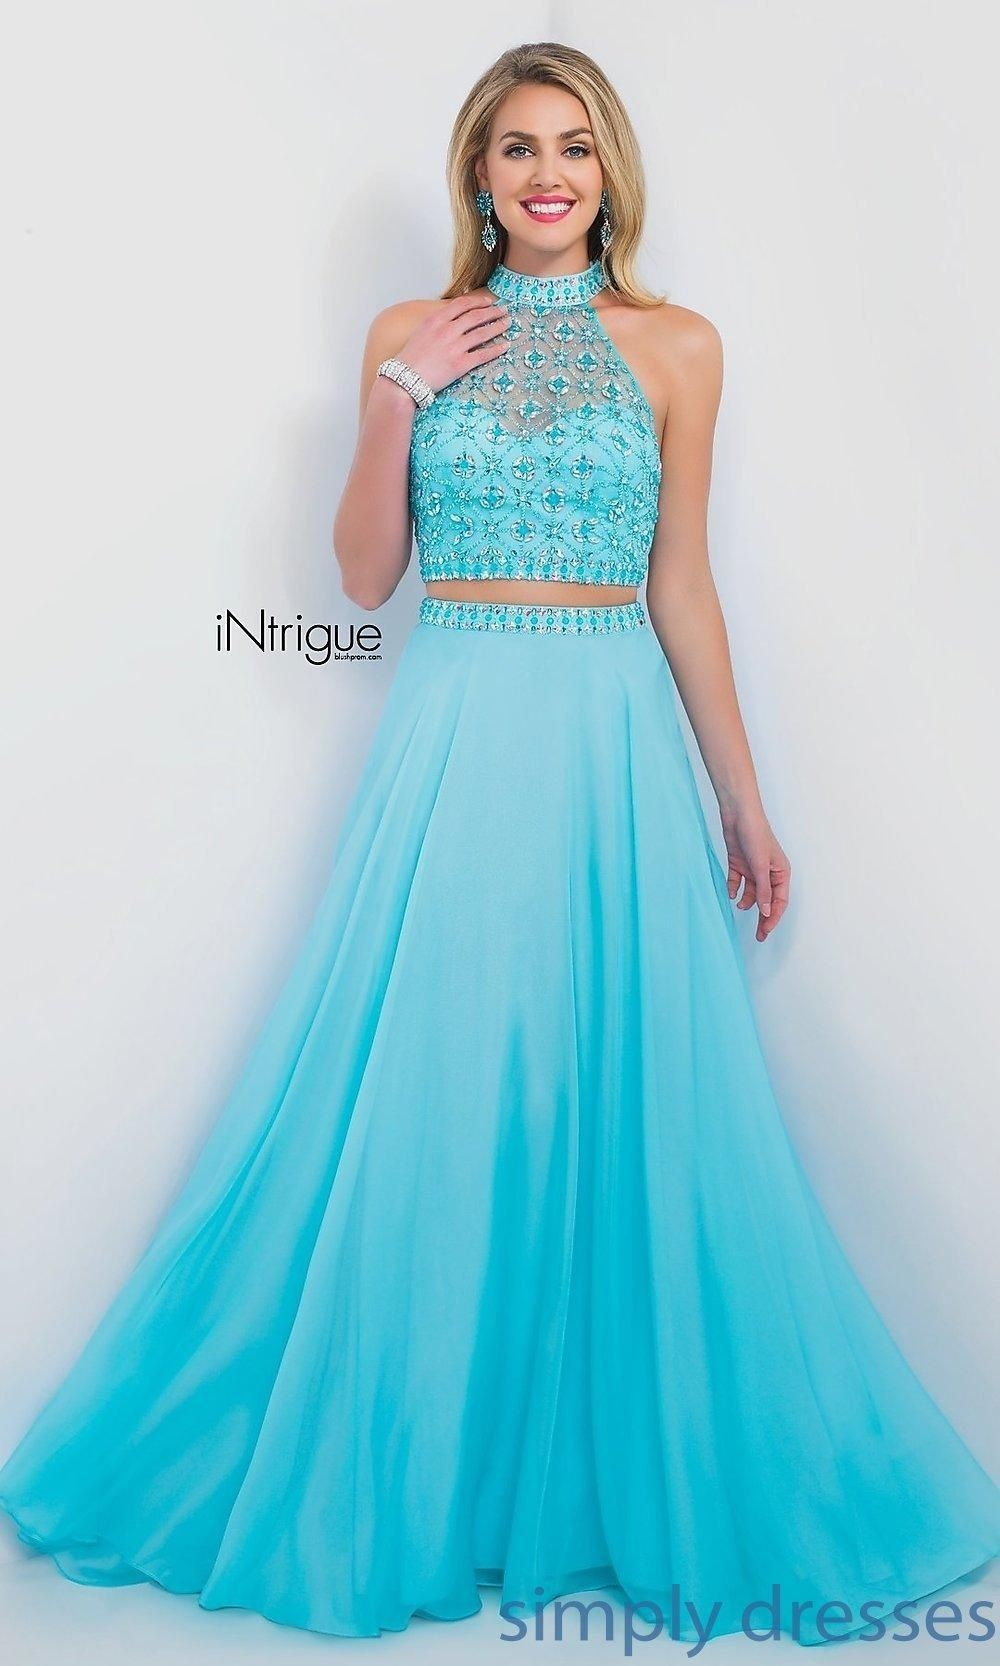 Turquoise Two Piece Intrigue by Blush Prom Dress - Brought to you ...